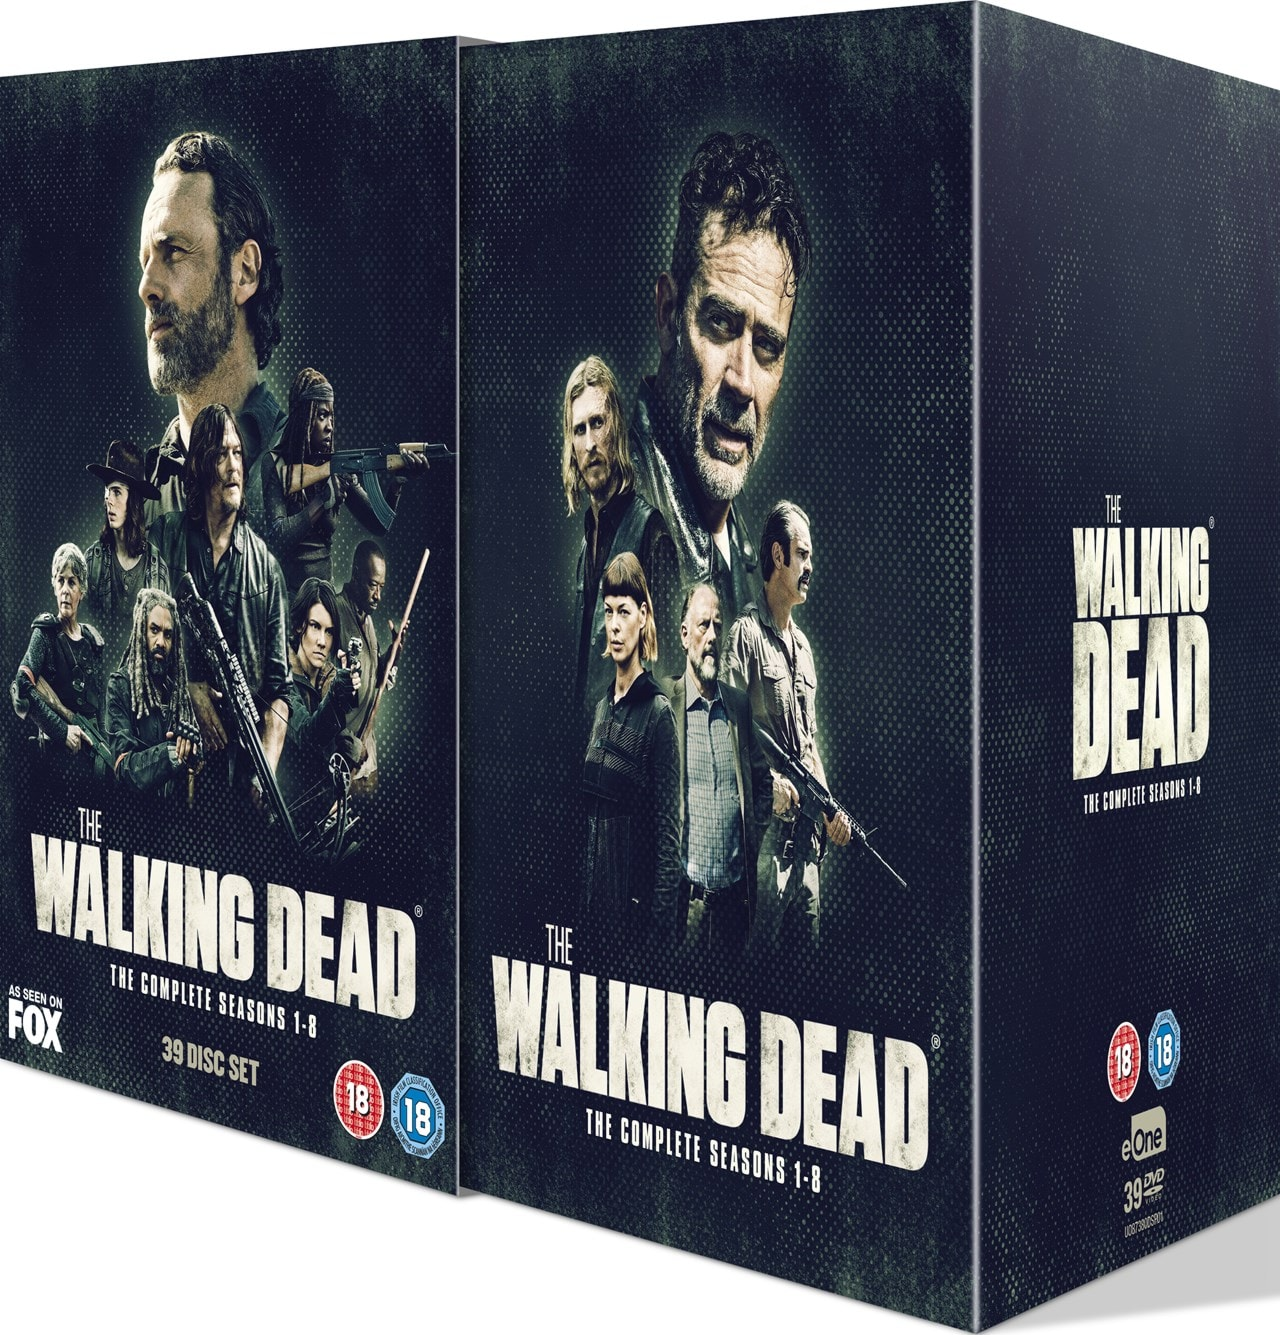 The Walking Dead: The Complete Seasons 1-8 - 3